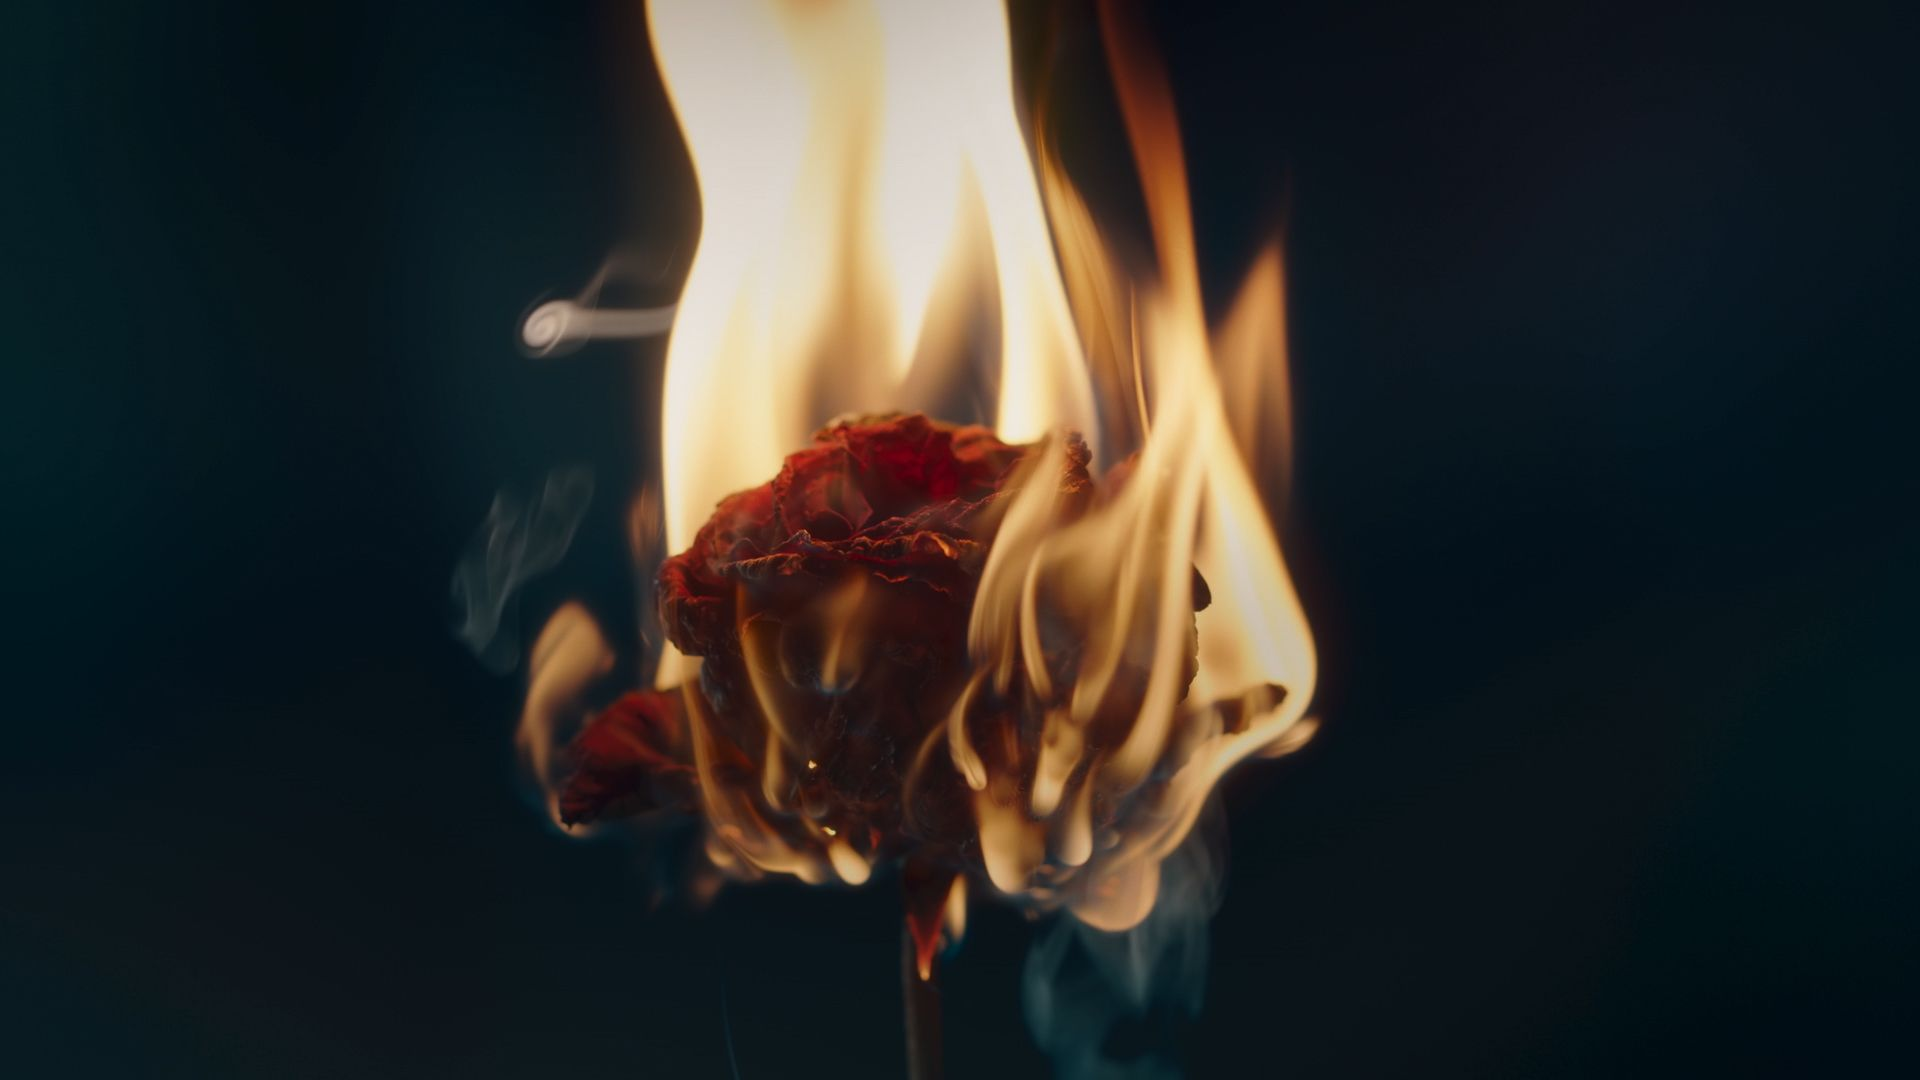 dried red rose on fire by Mathieu Levesque for Give A Shit by Colorectal Cancer Canada